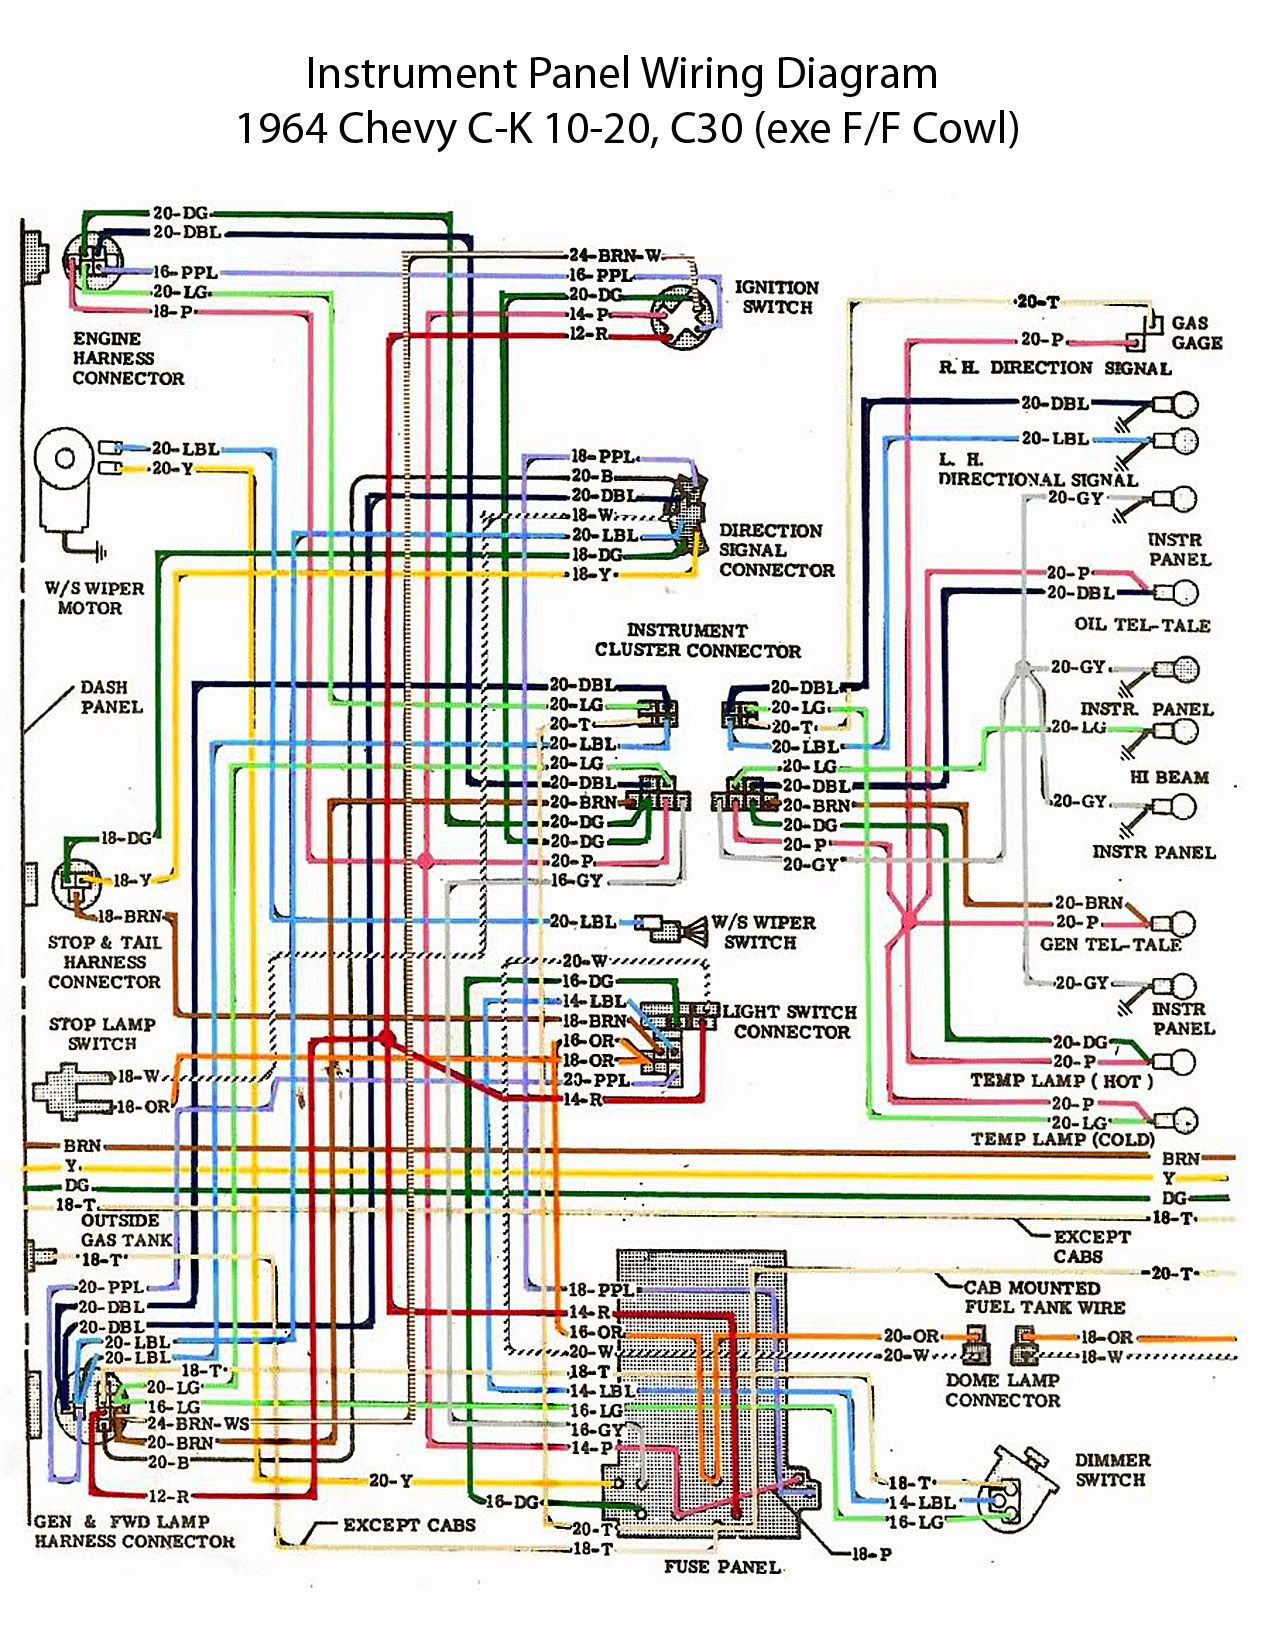 29f907bf017db832106977dbff5b5b31 64 chevy c10 wiring diagram chevy truck wiring diagram 64 1964 chevy wiring diagram at soozxer.org